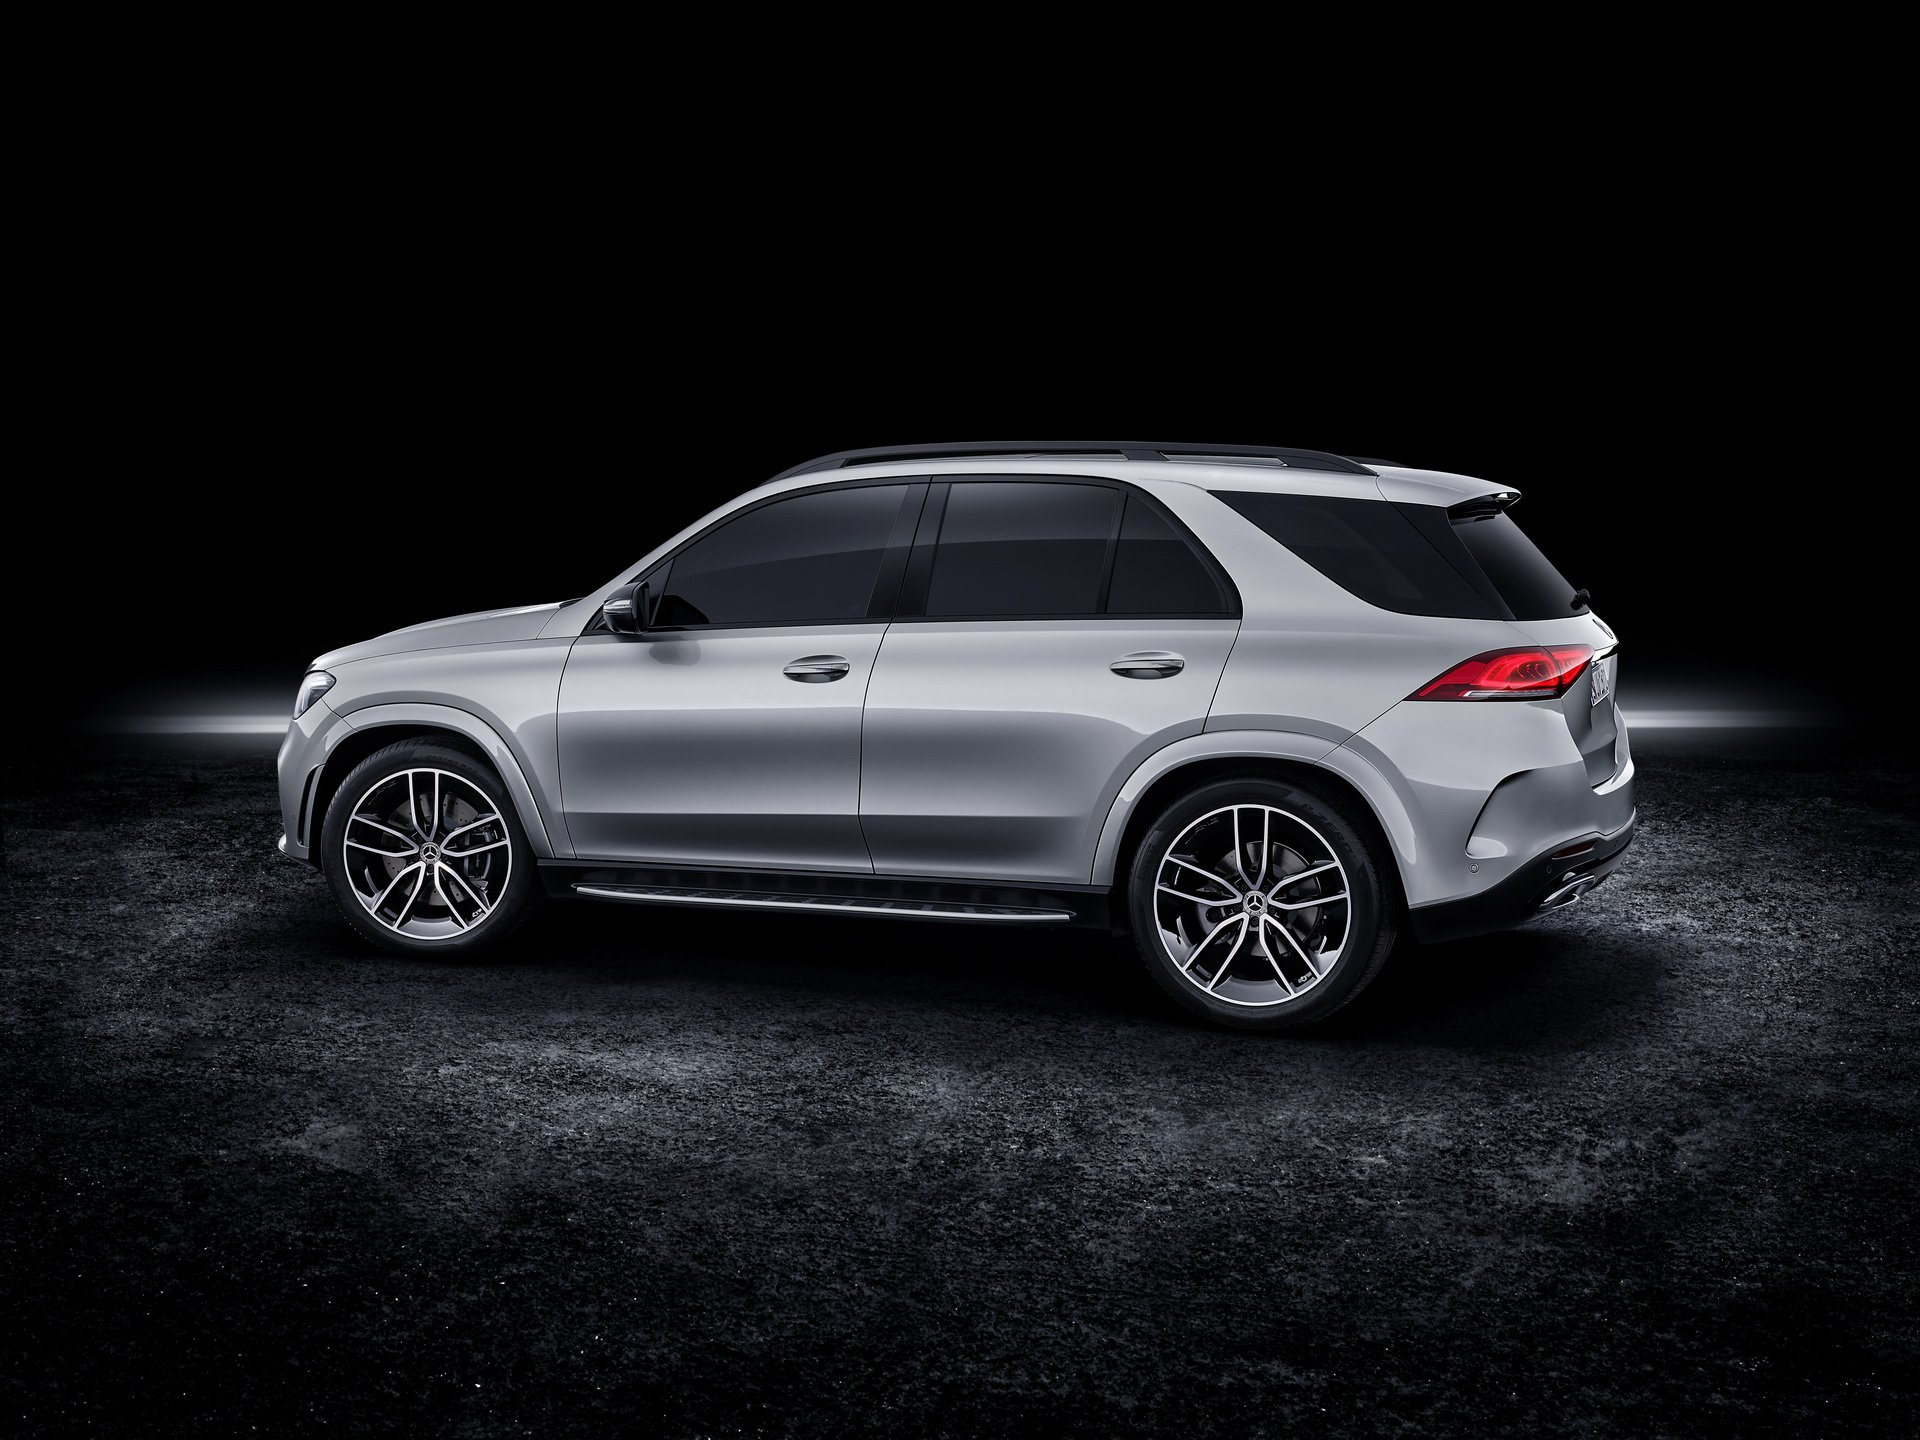 2020 Mercedes-Benz GLE 580 4Matic Joins U.S. Lineup ...